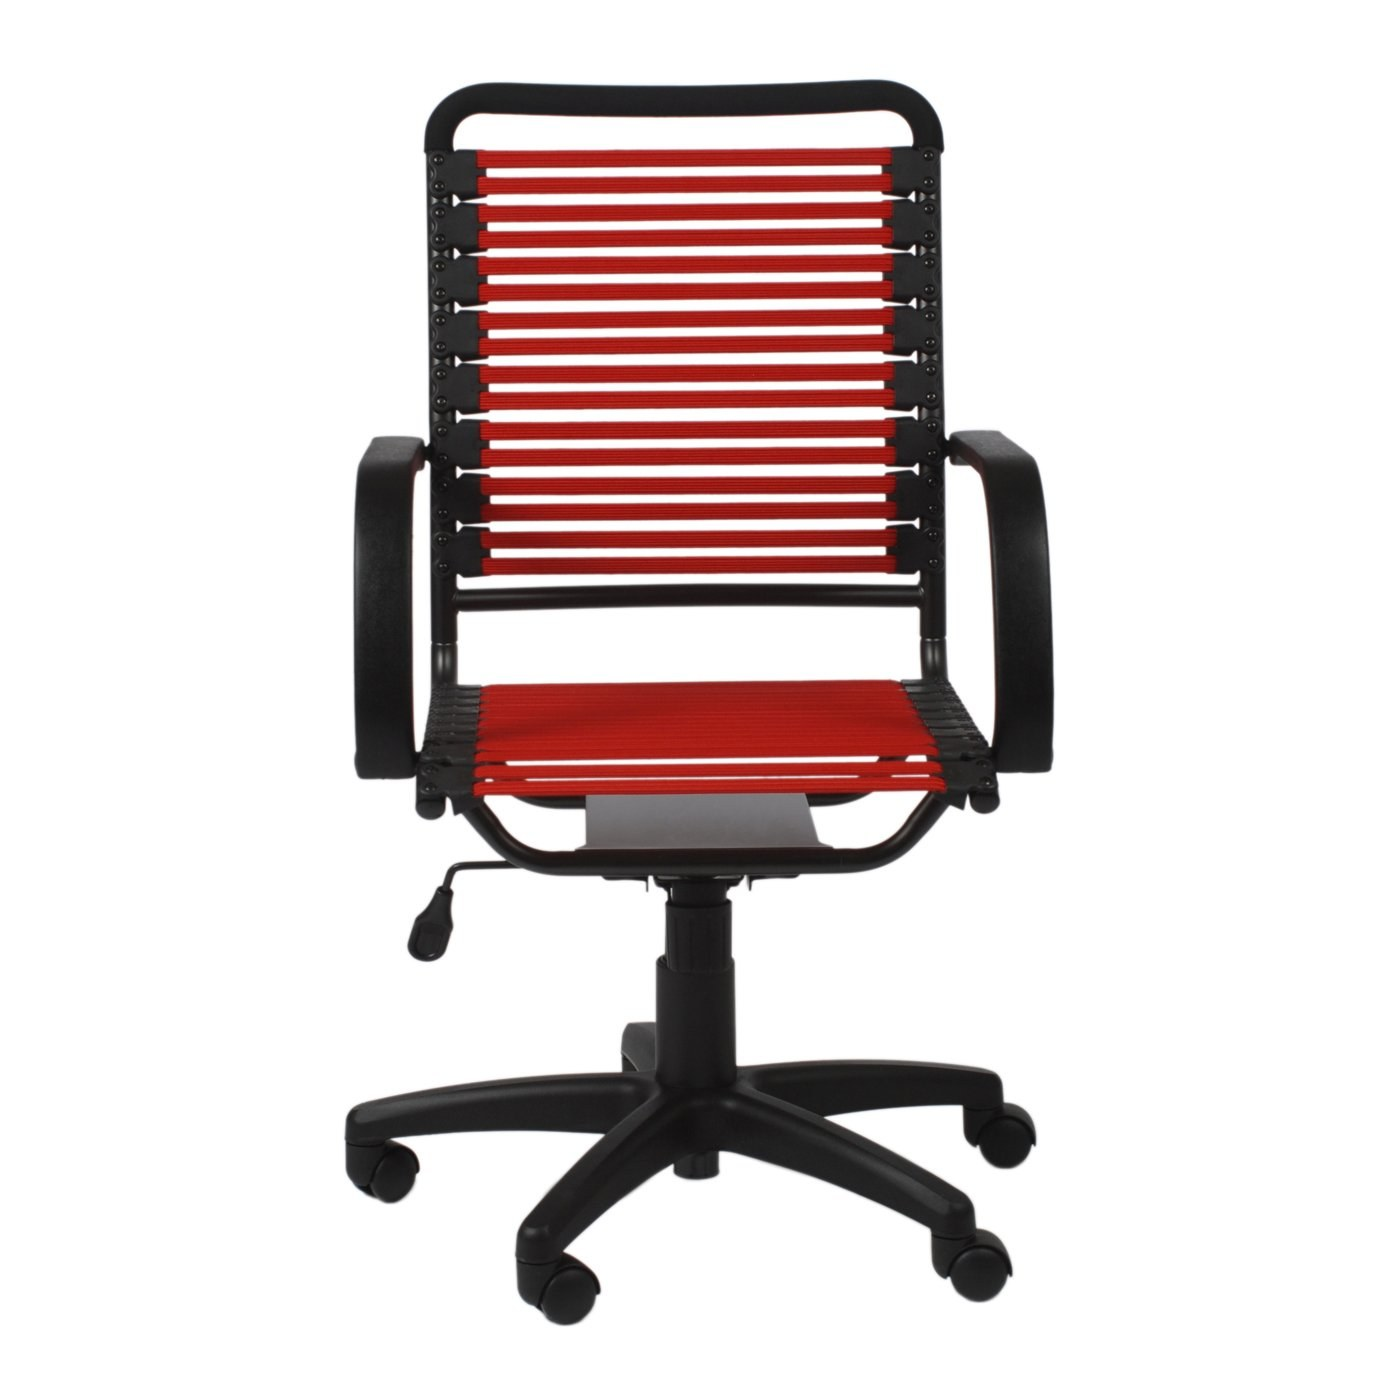 red high back chair cane supplies bungie flat office in by euro style